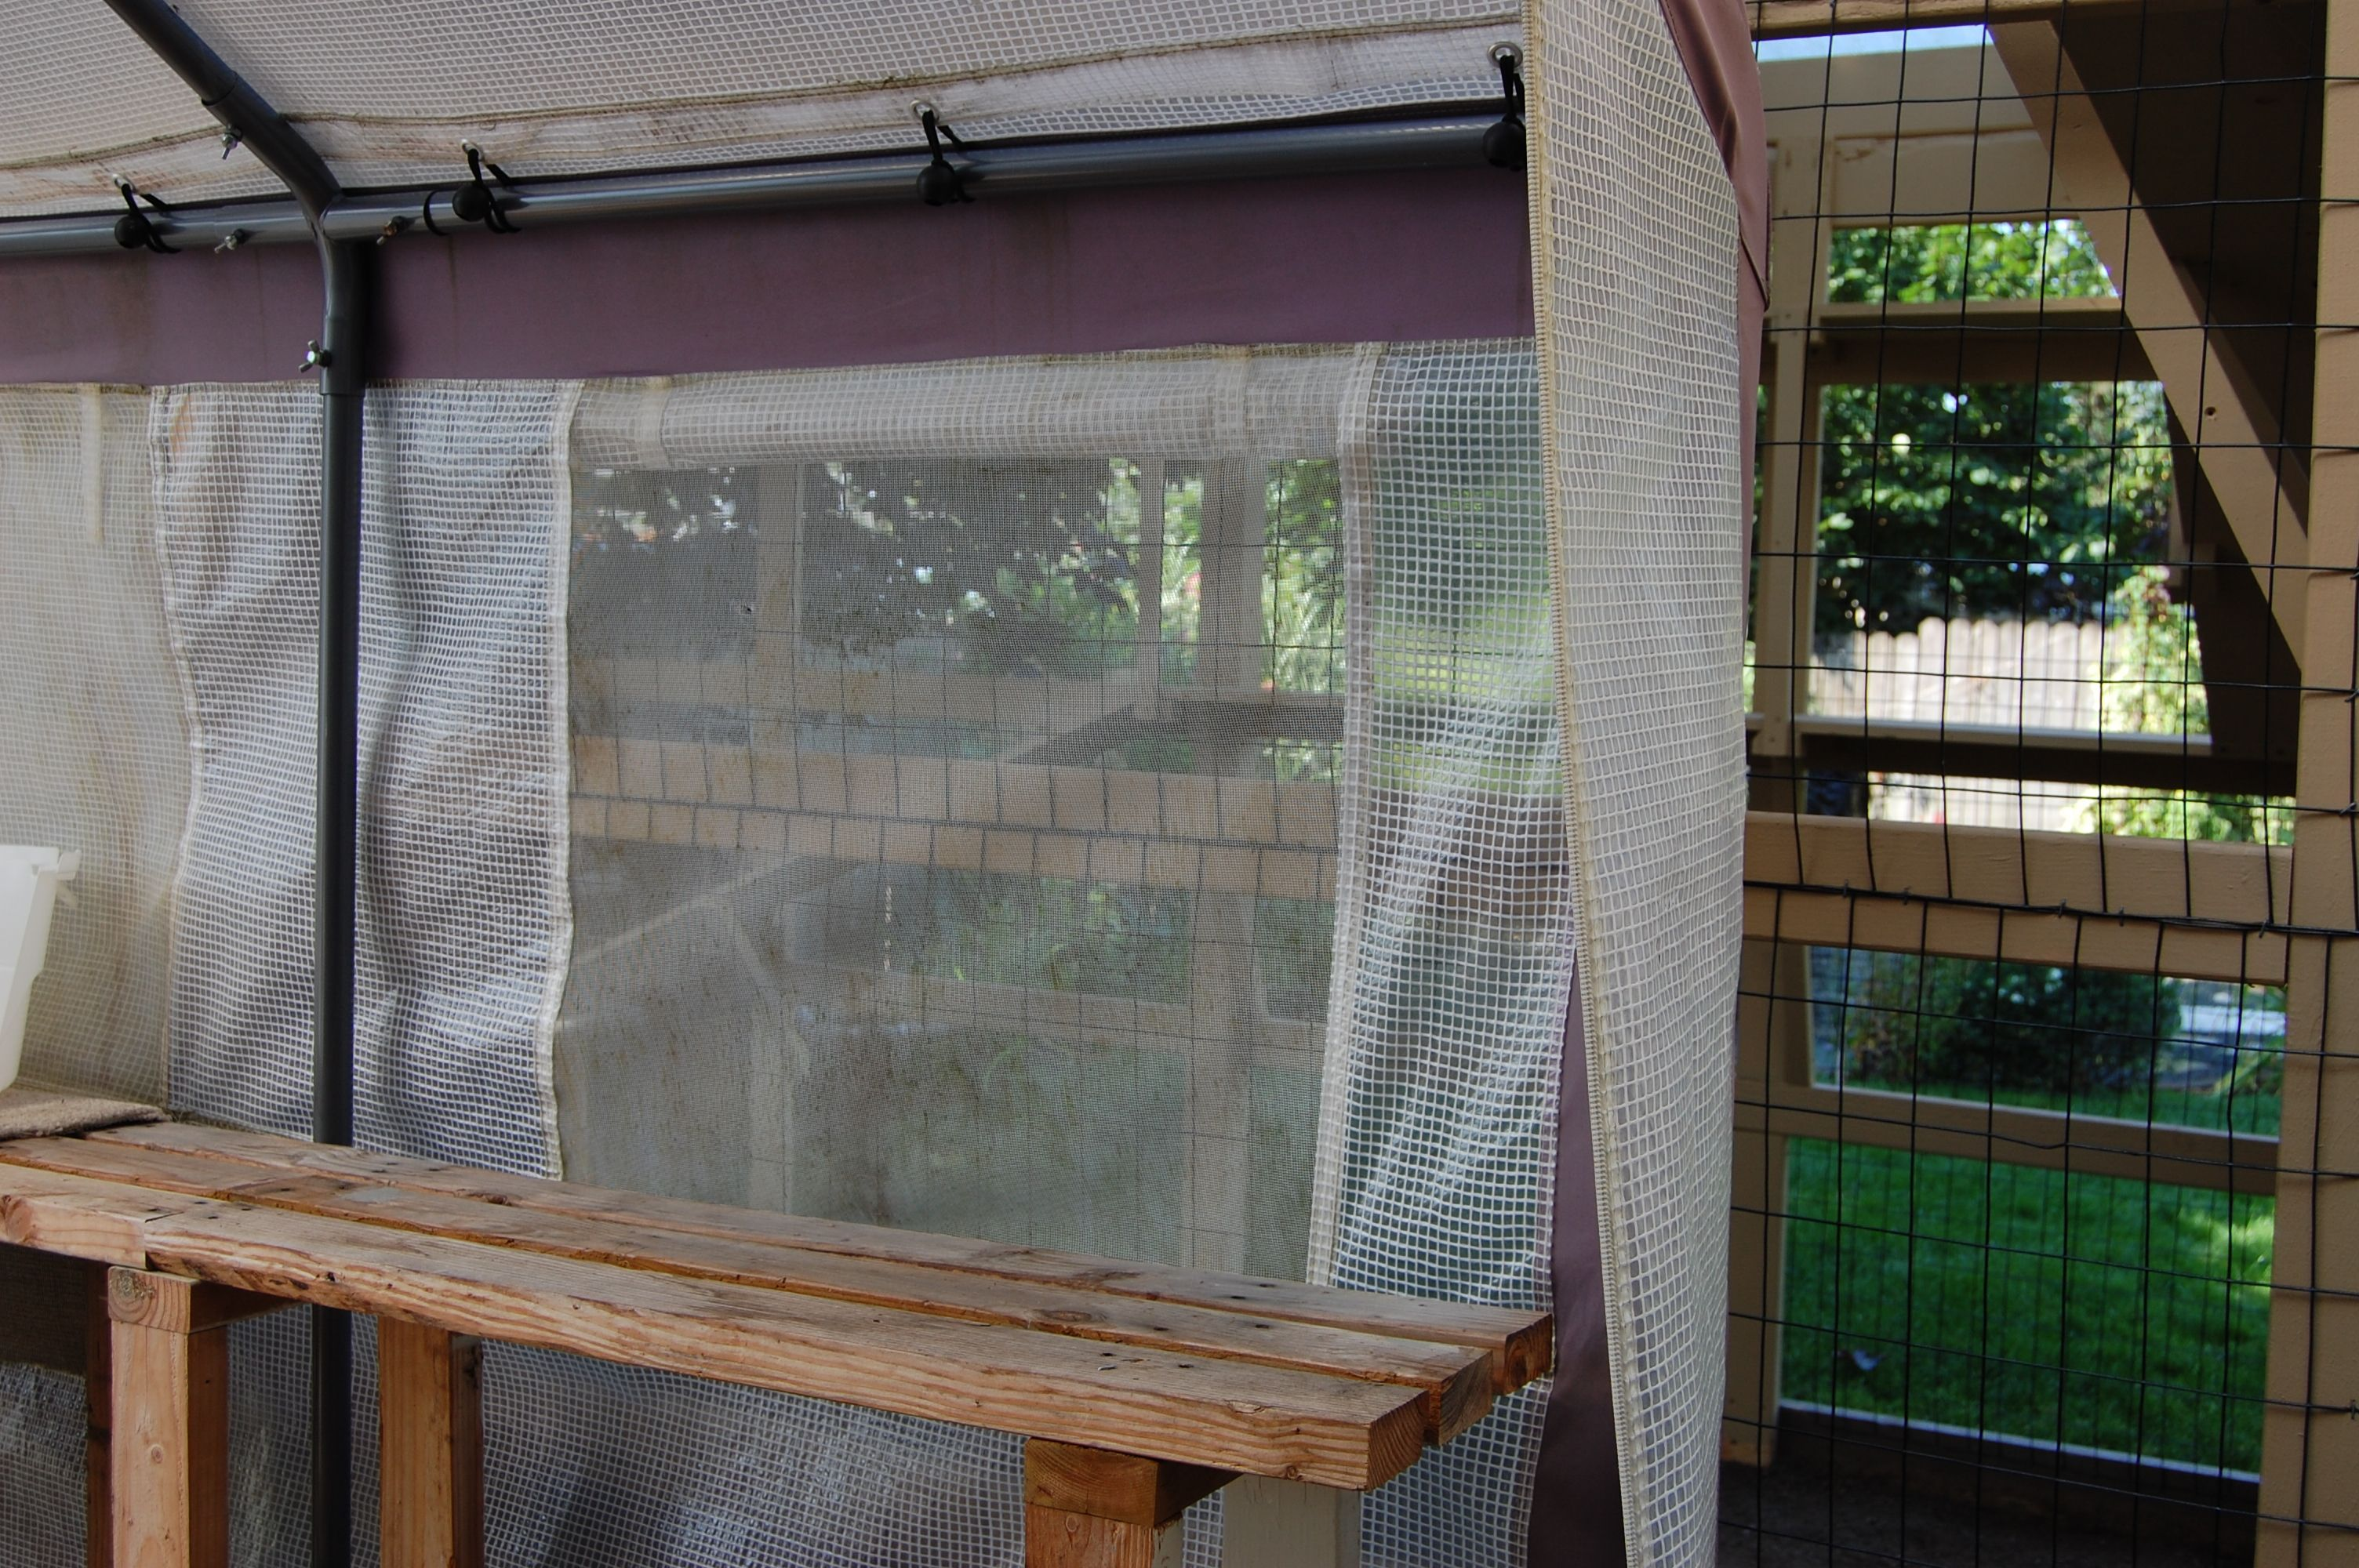 36 Best My Catio Images On Pinterest - Catio, Conservatory